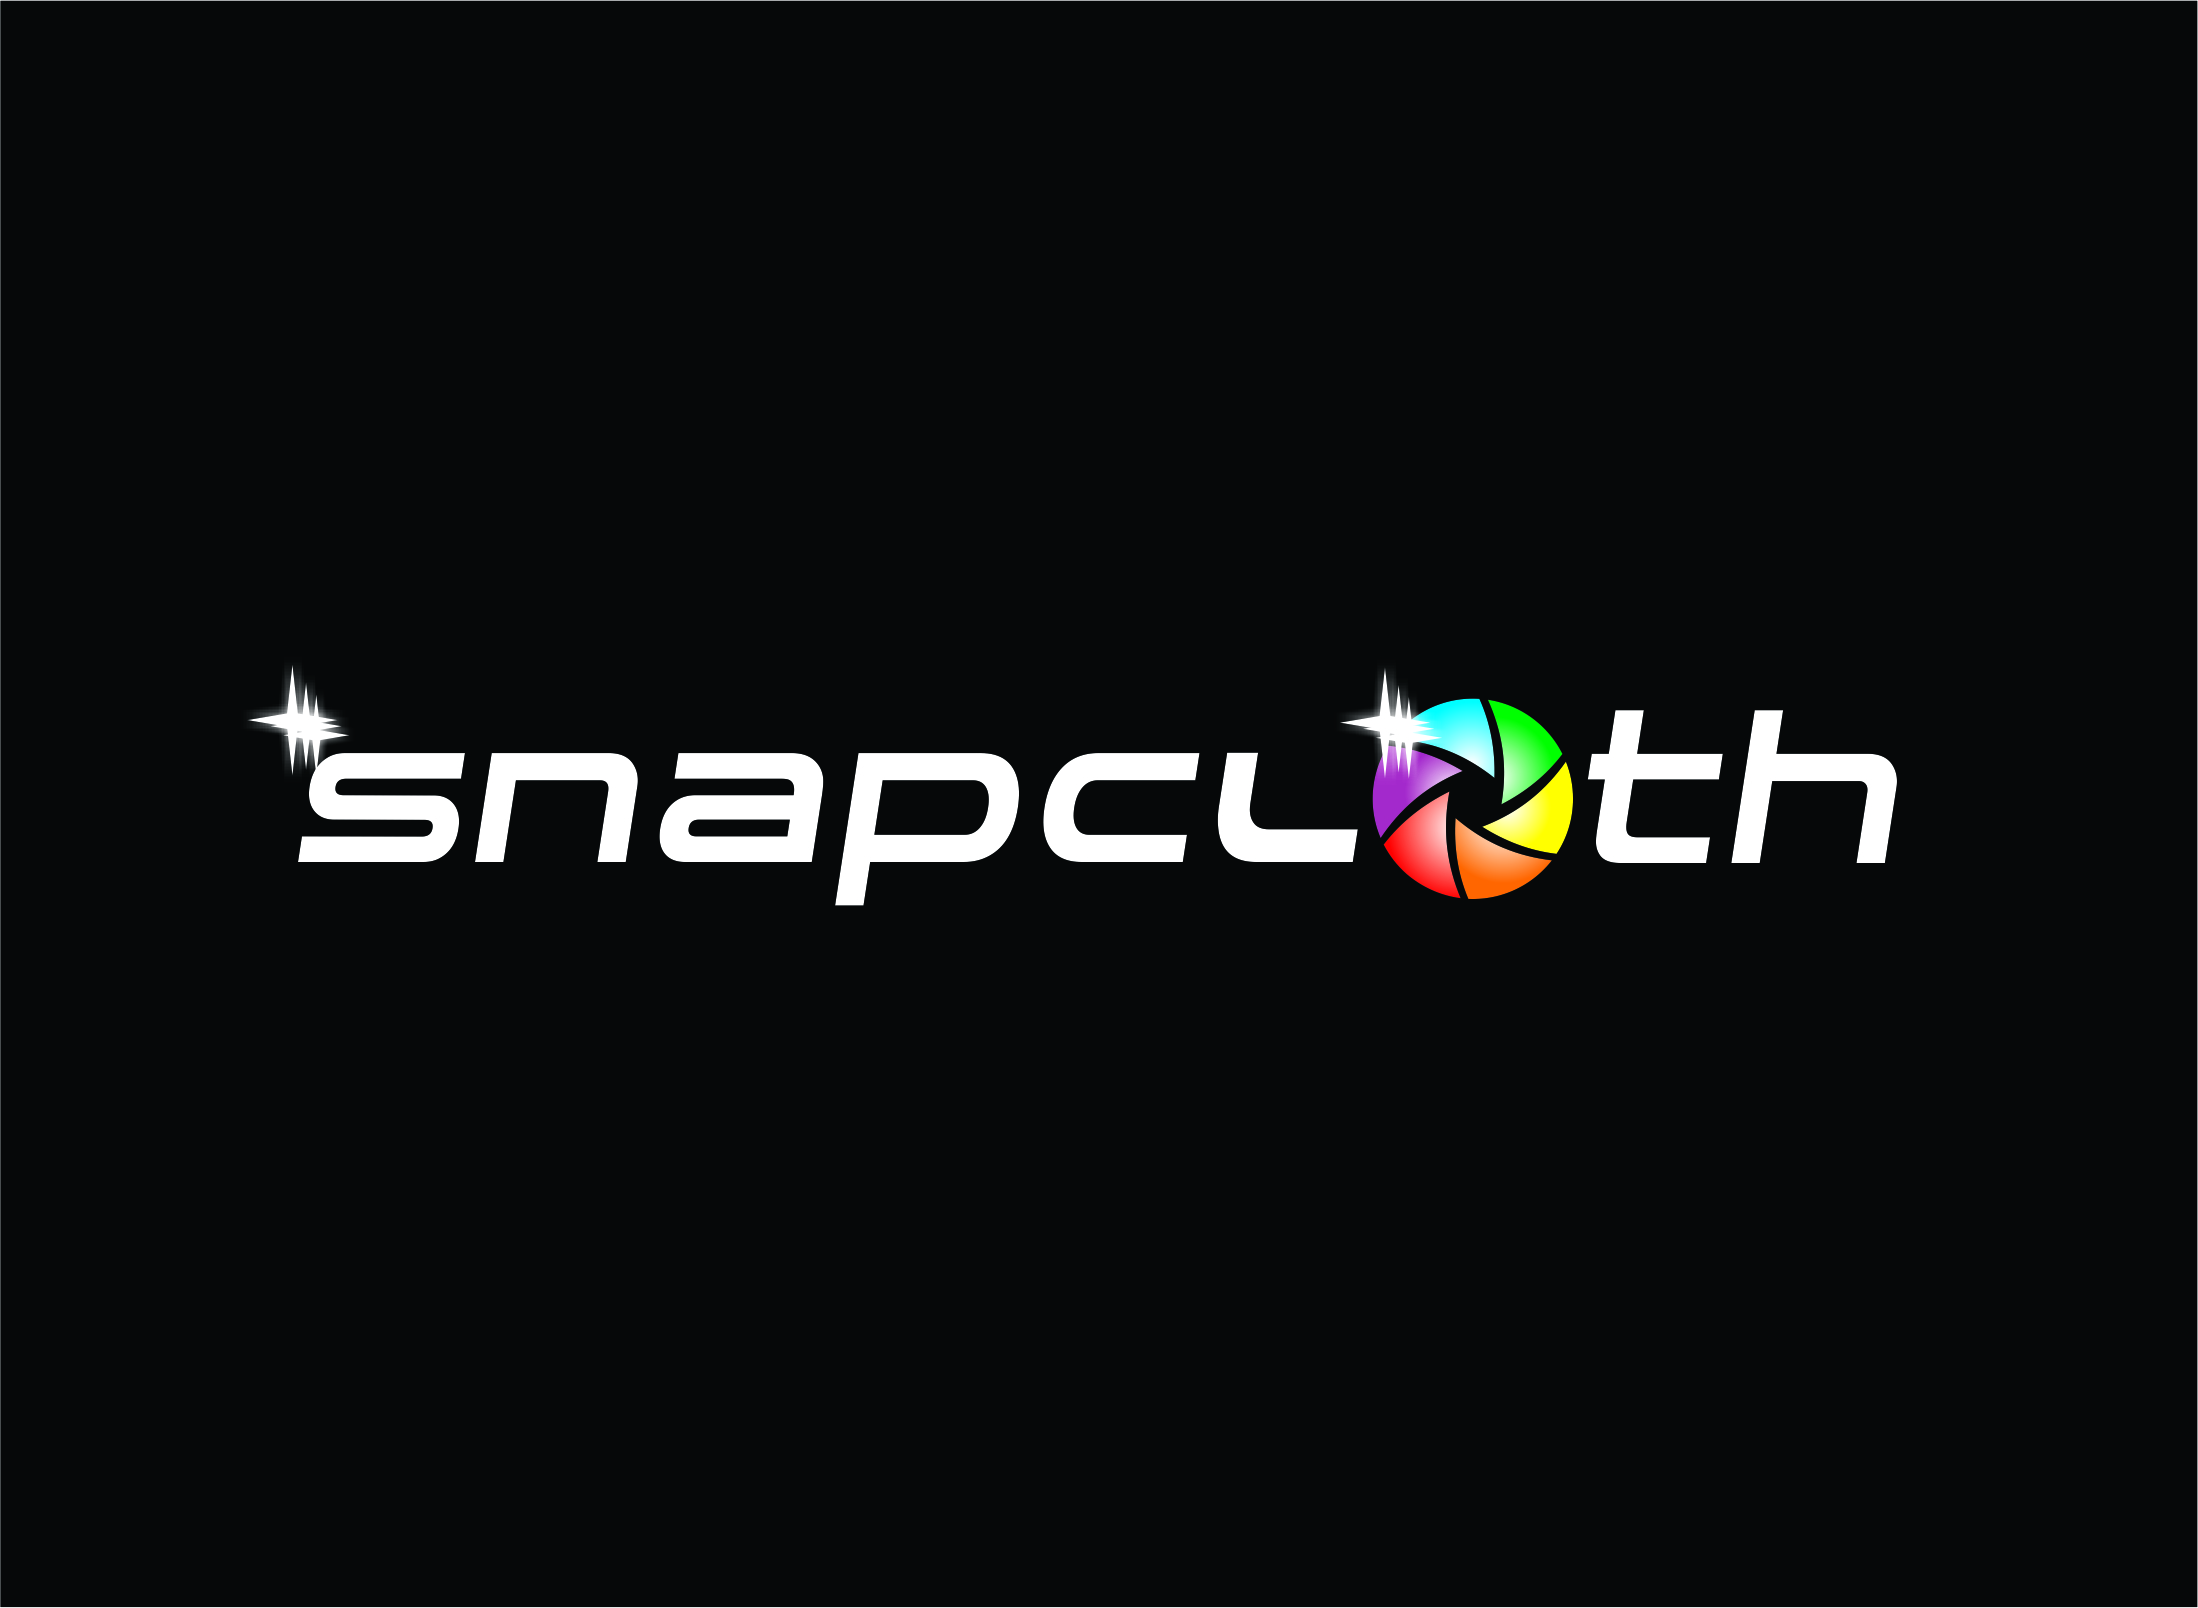 Logo Design by Zdravko Krulj - Entry No. 77 in the Logo Design Contest Snapcloth Logo Design.